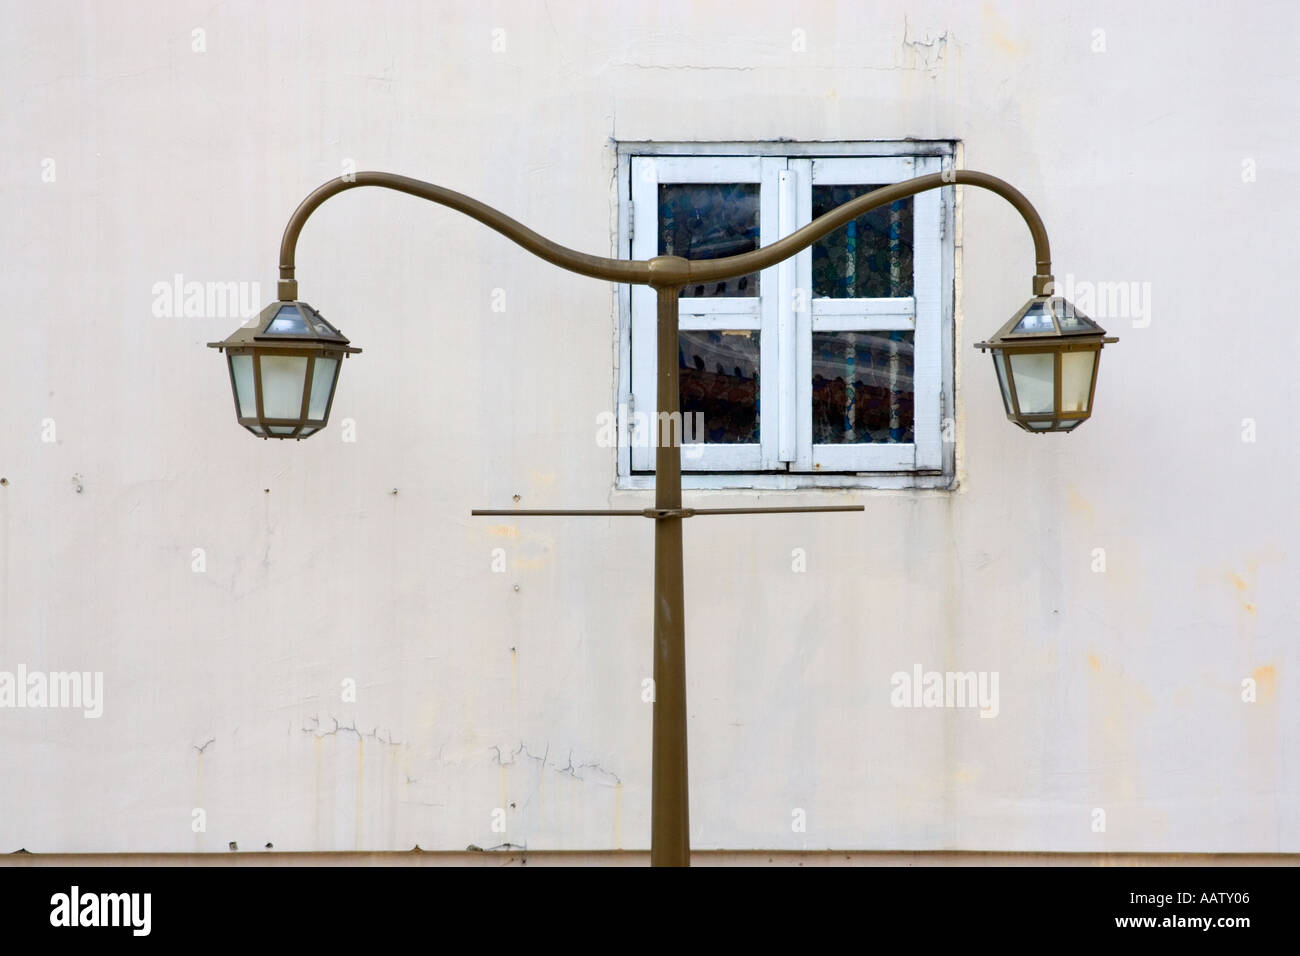 Street lamp and small window in Chinatown Singapore Stock Photo